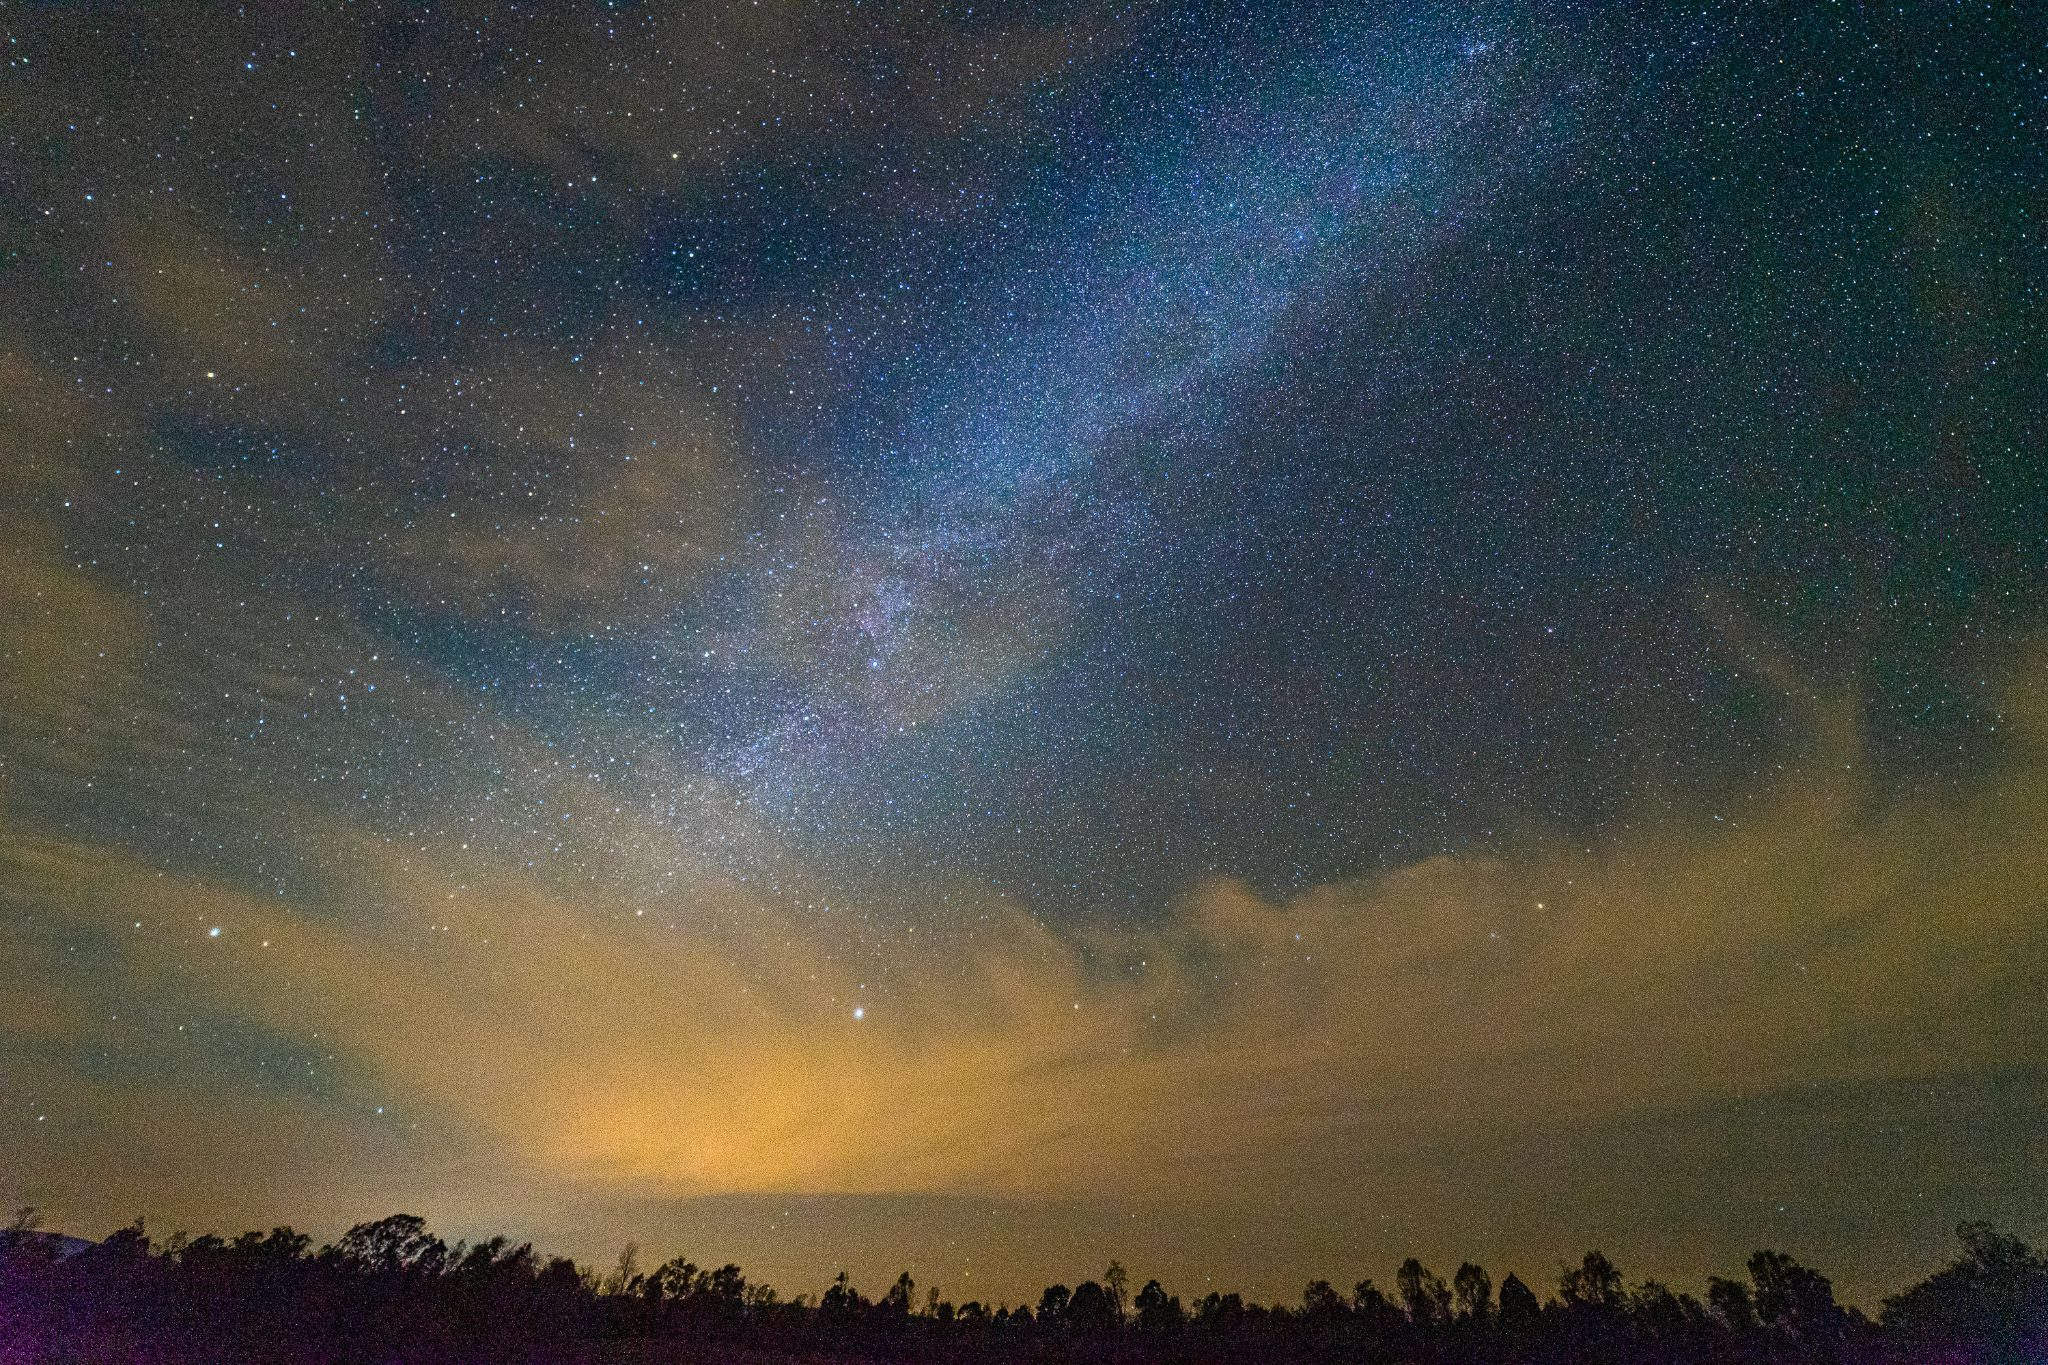 Starry Nights in the Shenandoah Valley